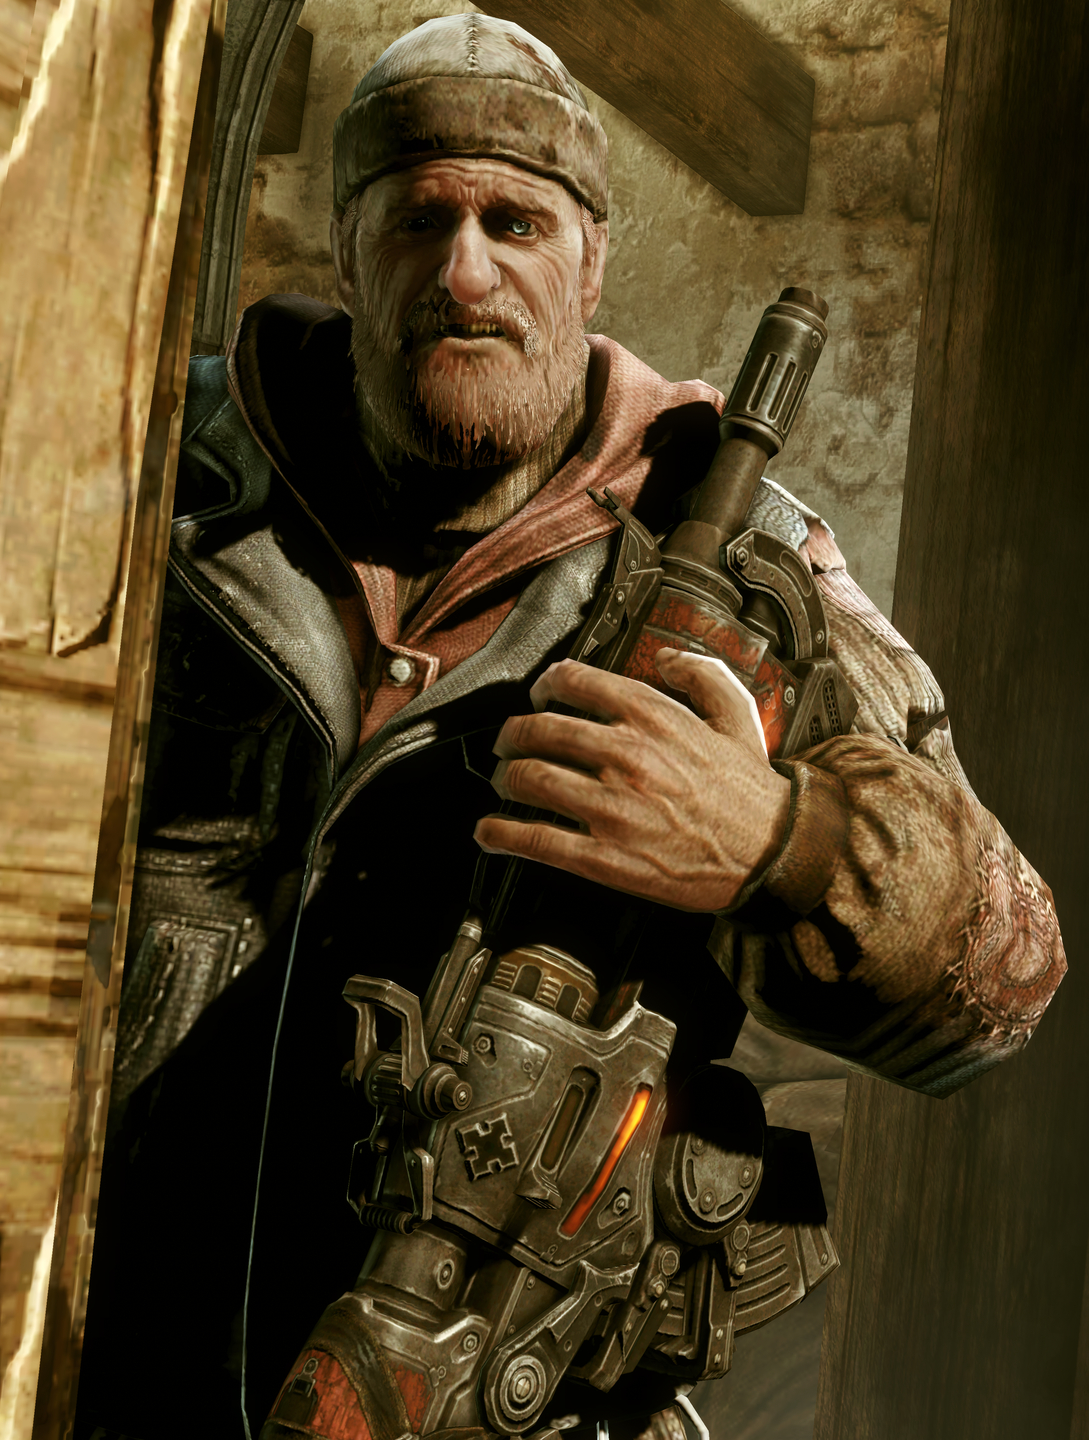 Unidentified Stranded Old Man Mercy Gears Of War Fandom